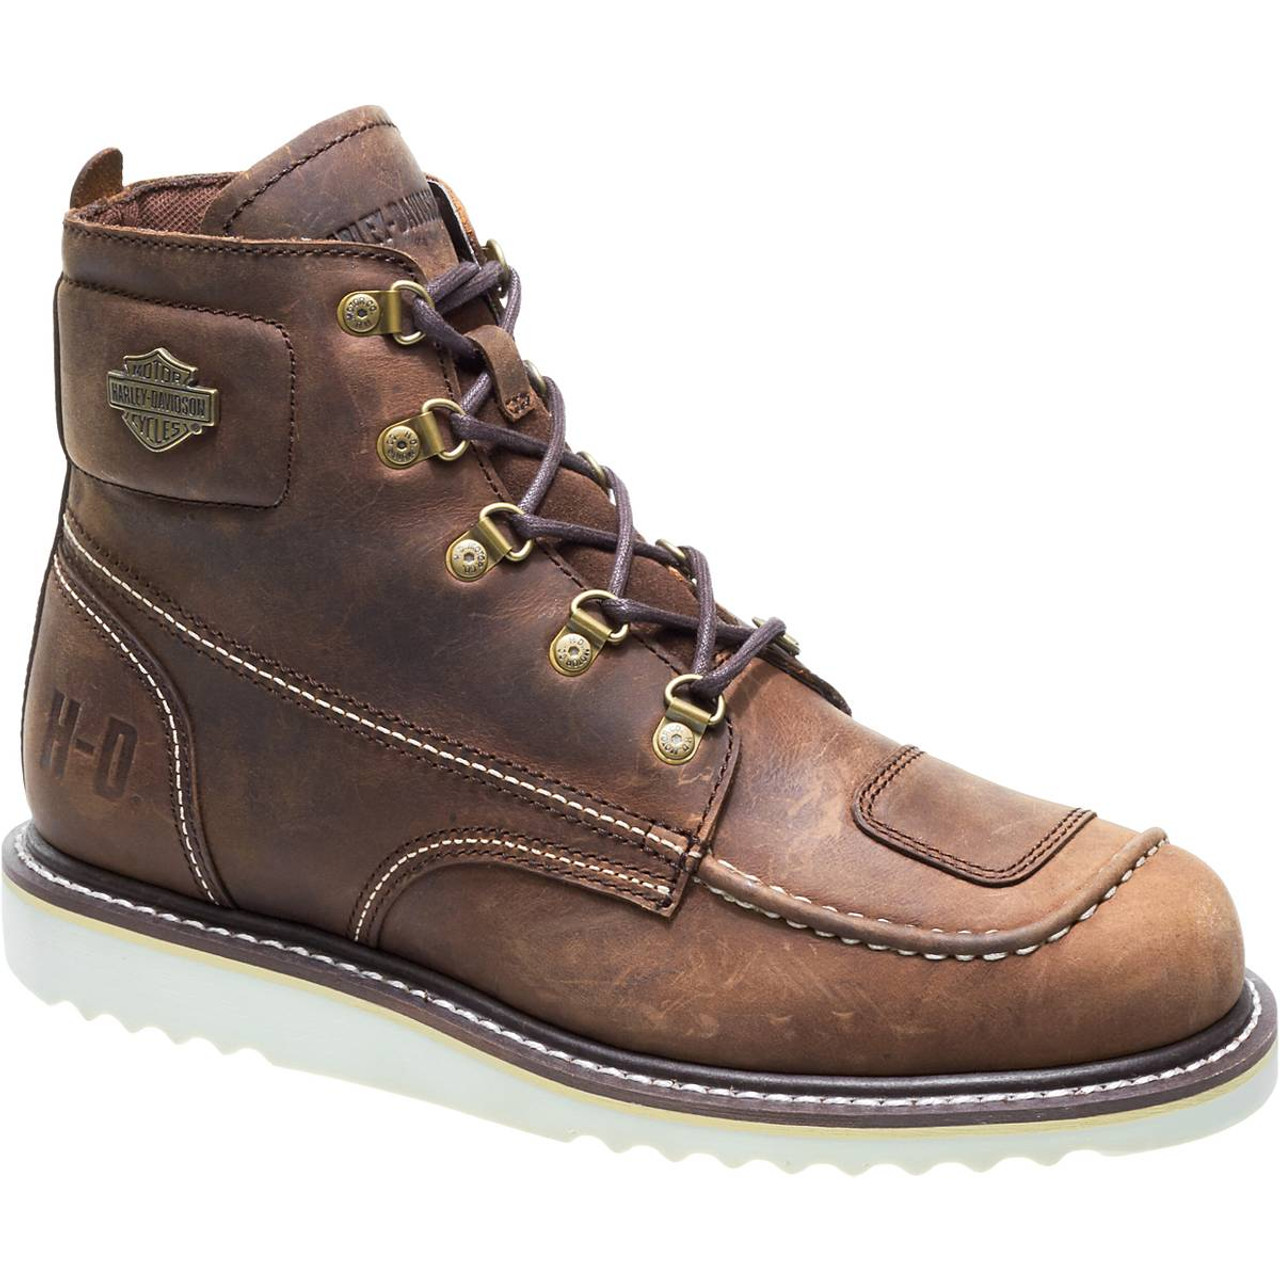 2c003f4eb18 Harley Davidson Hagerman Zip Sided Full Grain Leather Boots in Brown ...